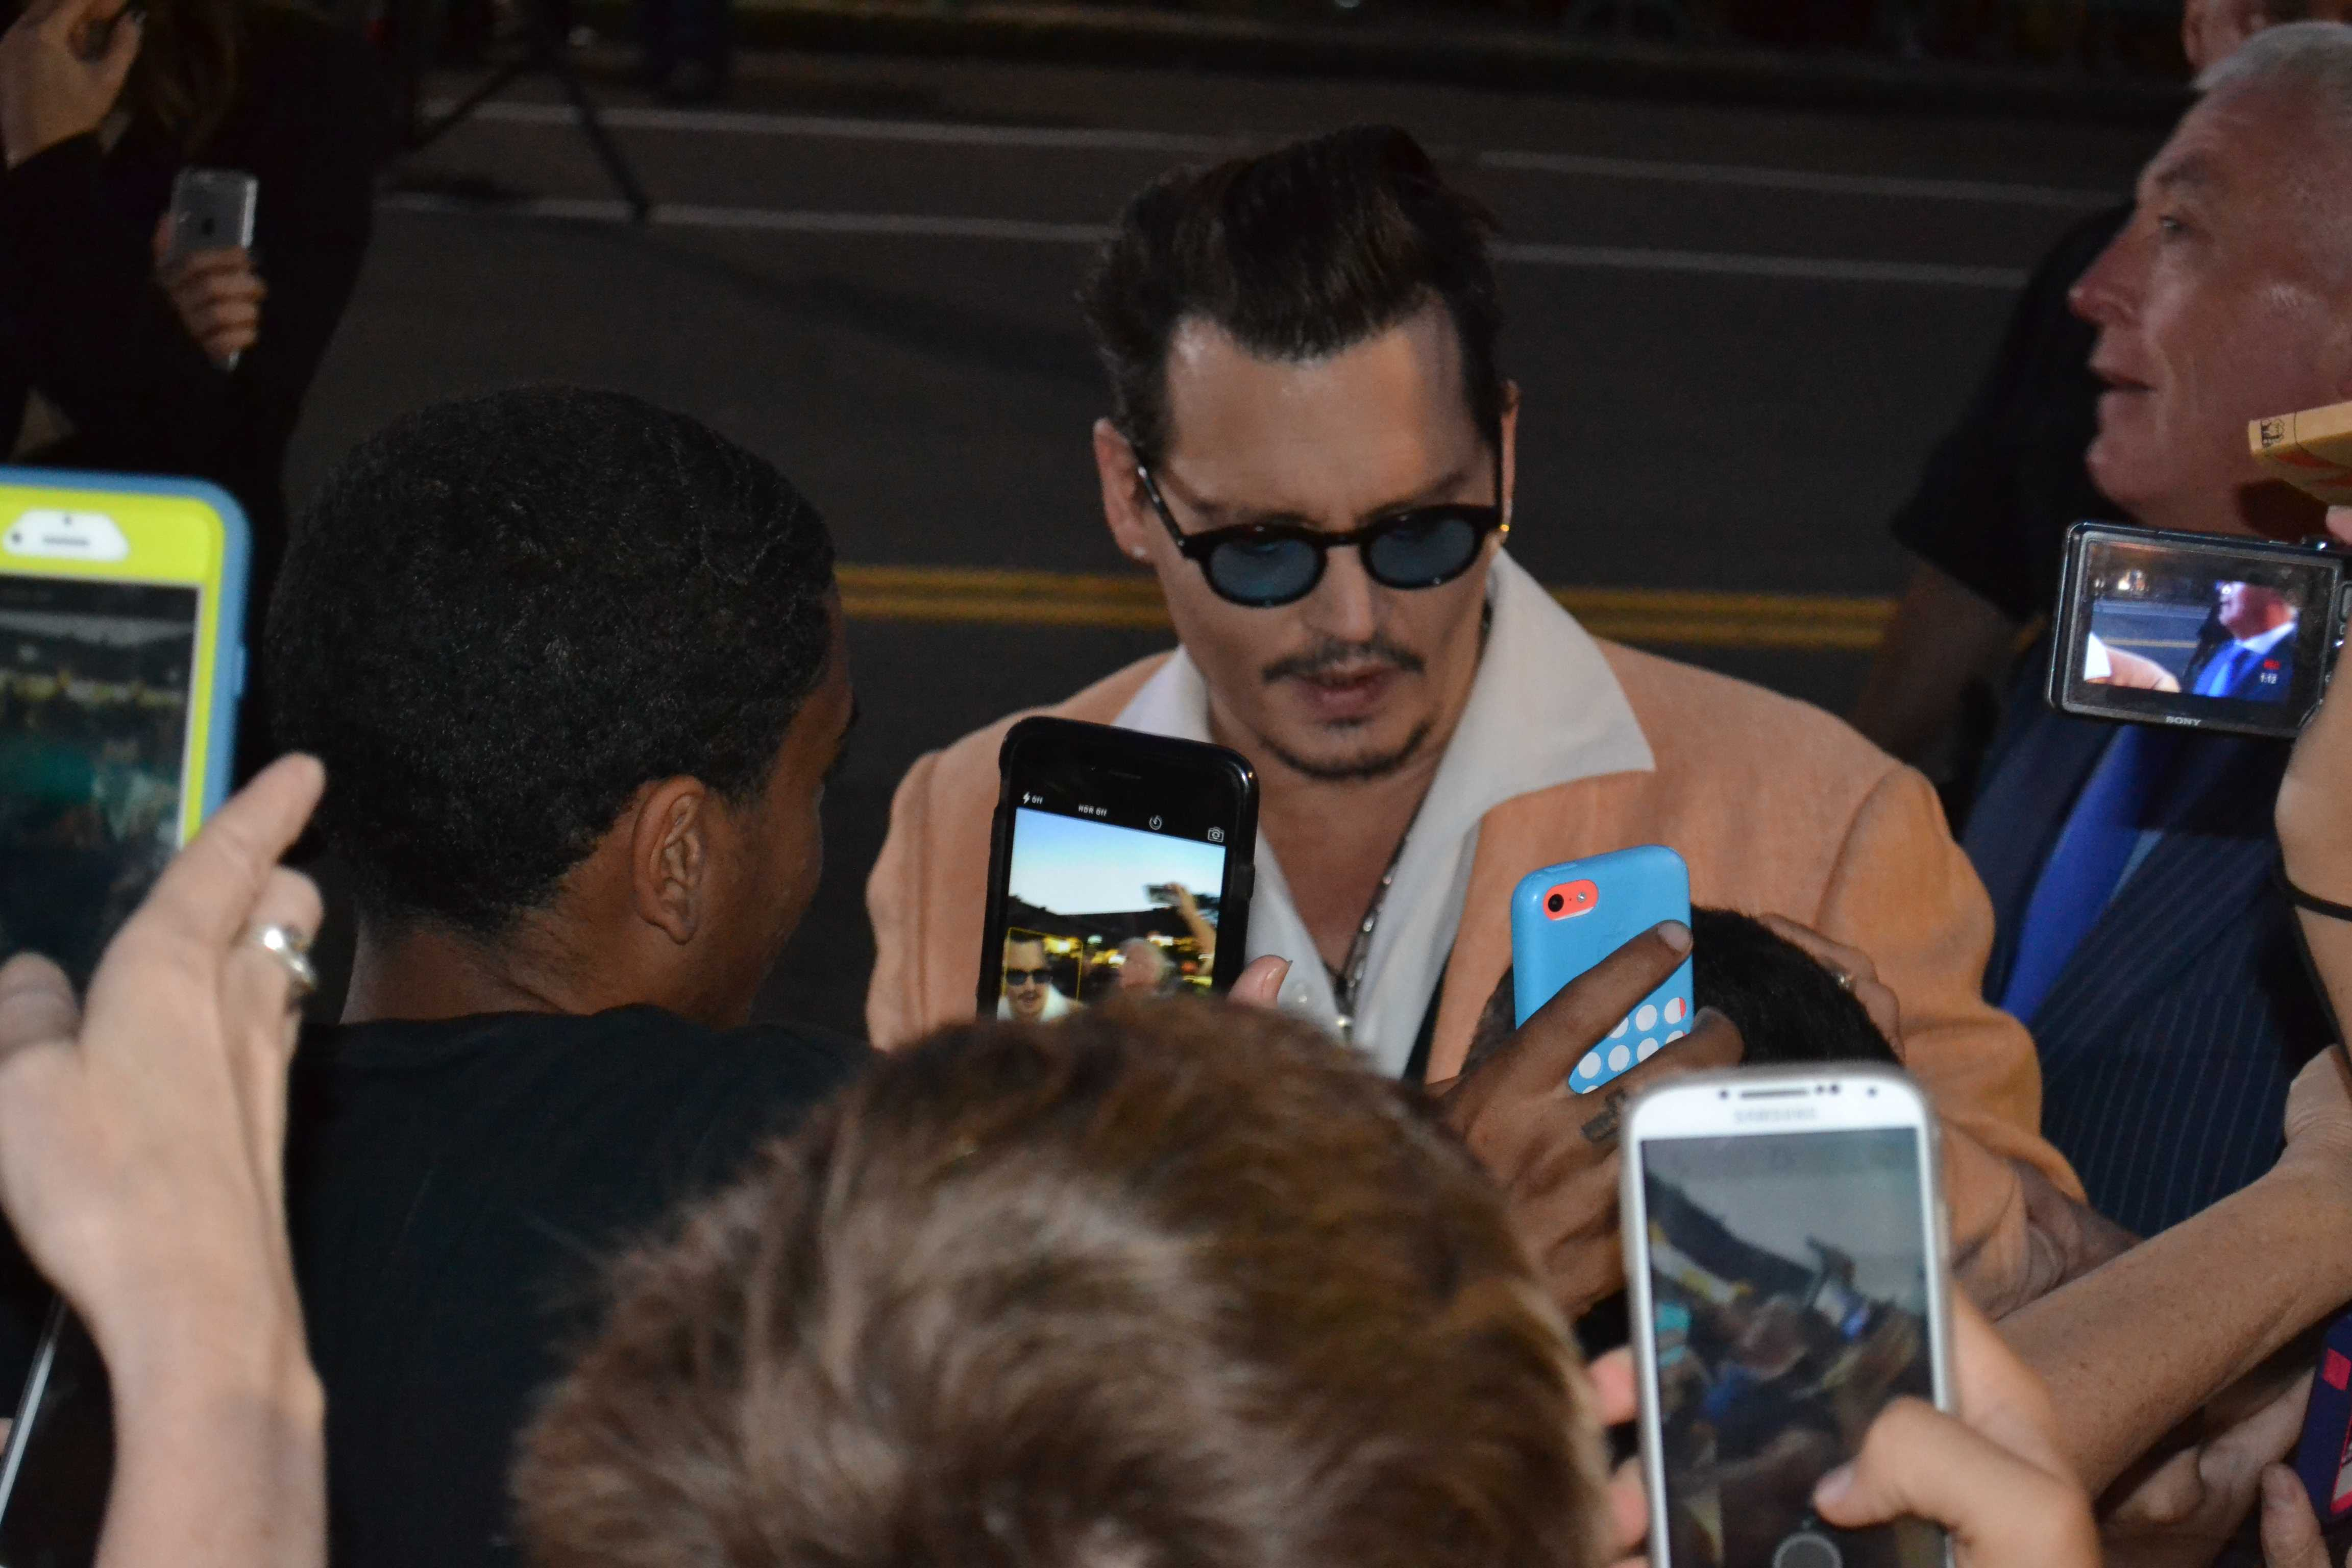 Actor Johnny Depp signs an autograph for a fan. Photo by Kendall McGowan.